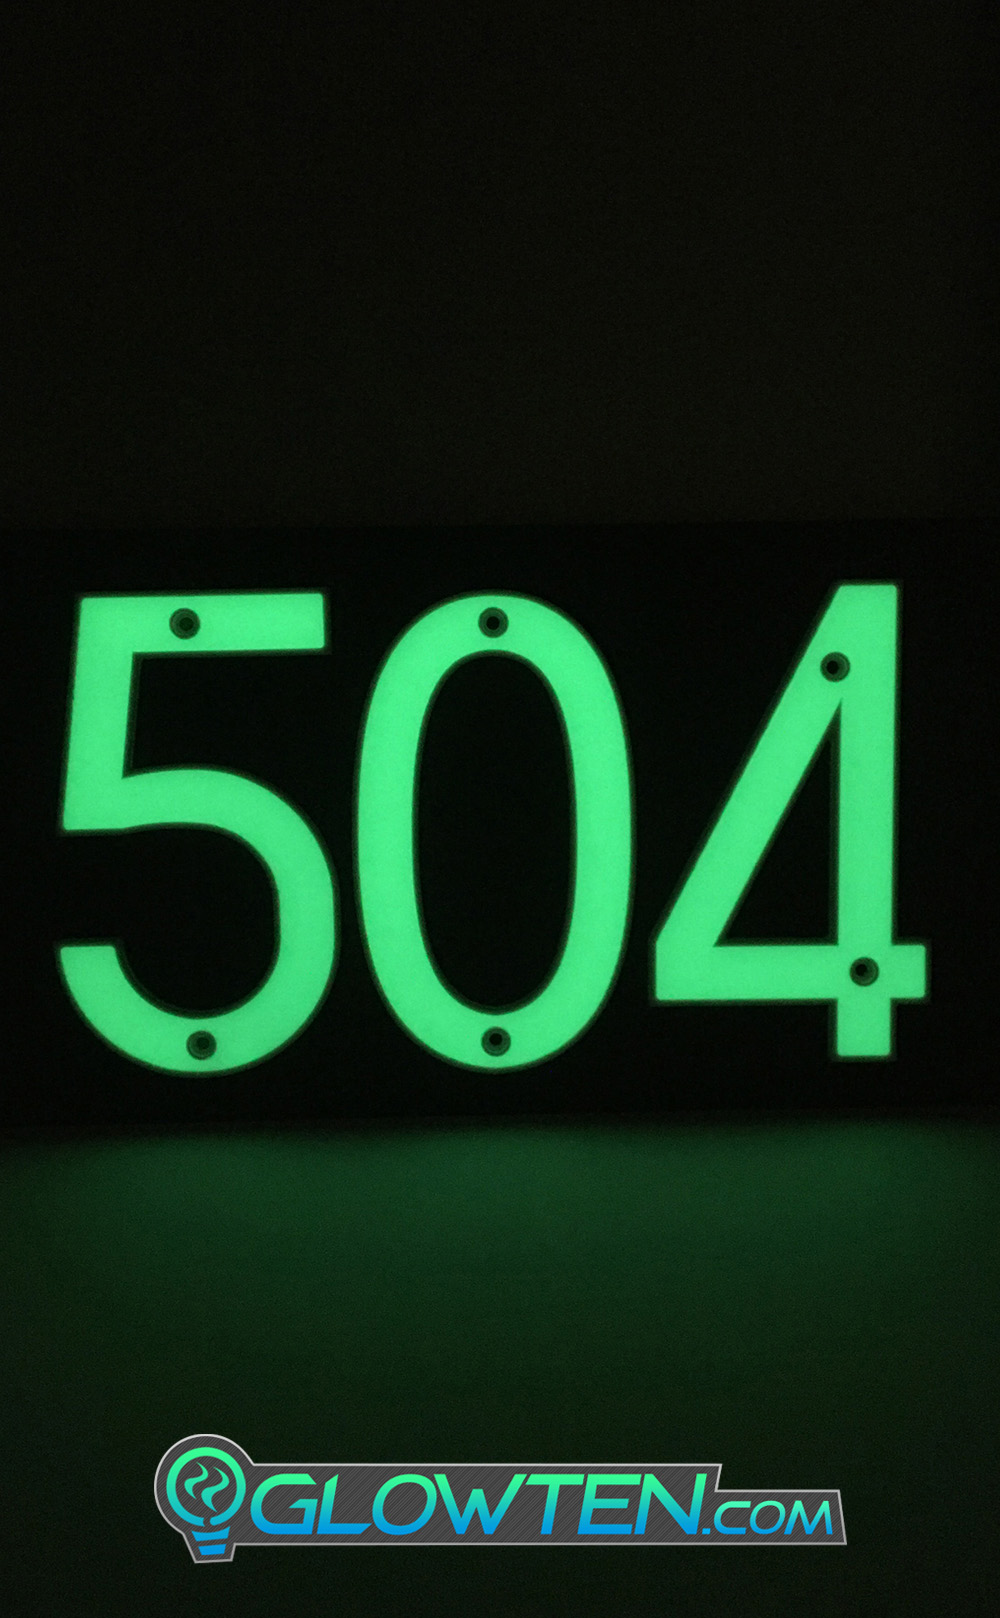 GLOWTEN.com - Fully Customizable Please Pick And Choose Your Numbers THREE 3 NUMBERS with BLACK PLAQUE BACKING Glow In Dark House Address Number Horizontal Eco Friendly Photoluminescent Sign ABS Material Price For Whole Set No Electricity Required Emitting Glow Light Indefinitely picture photo cap preview pic image search 2